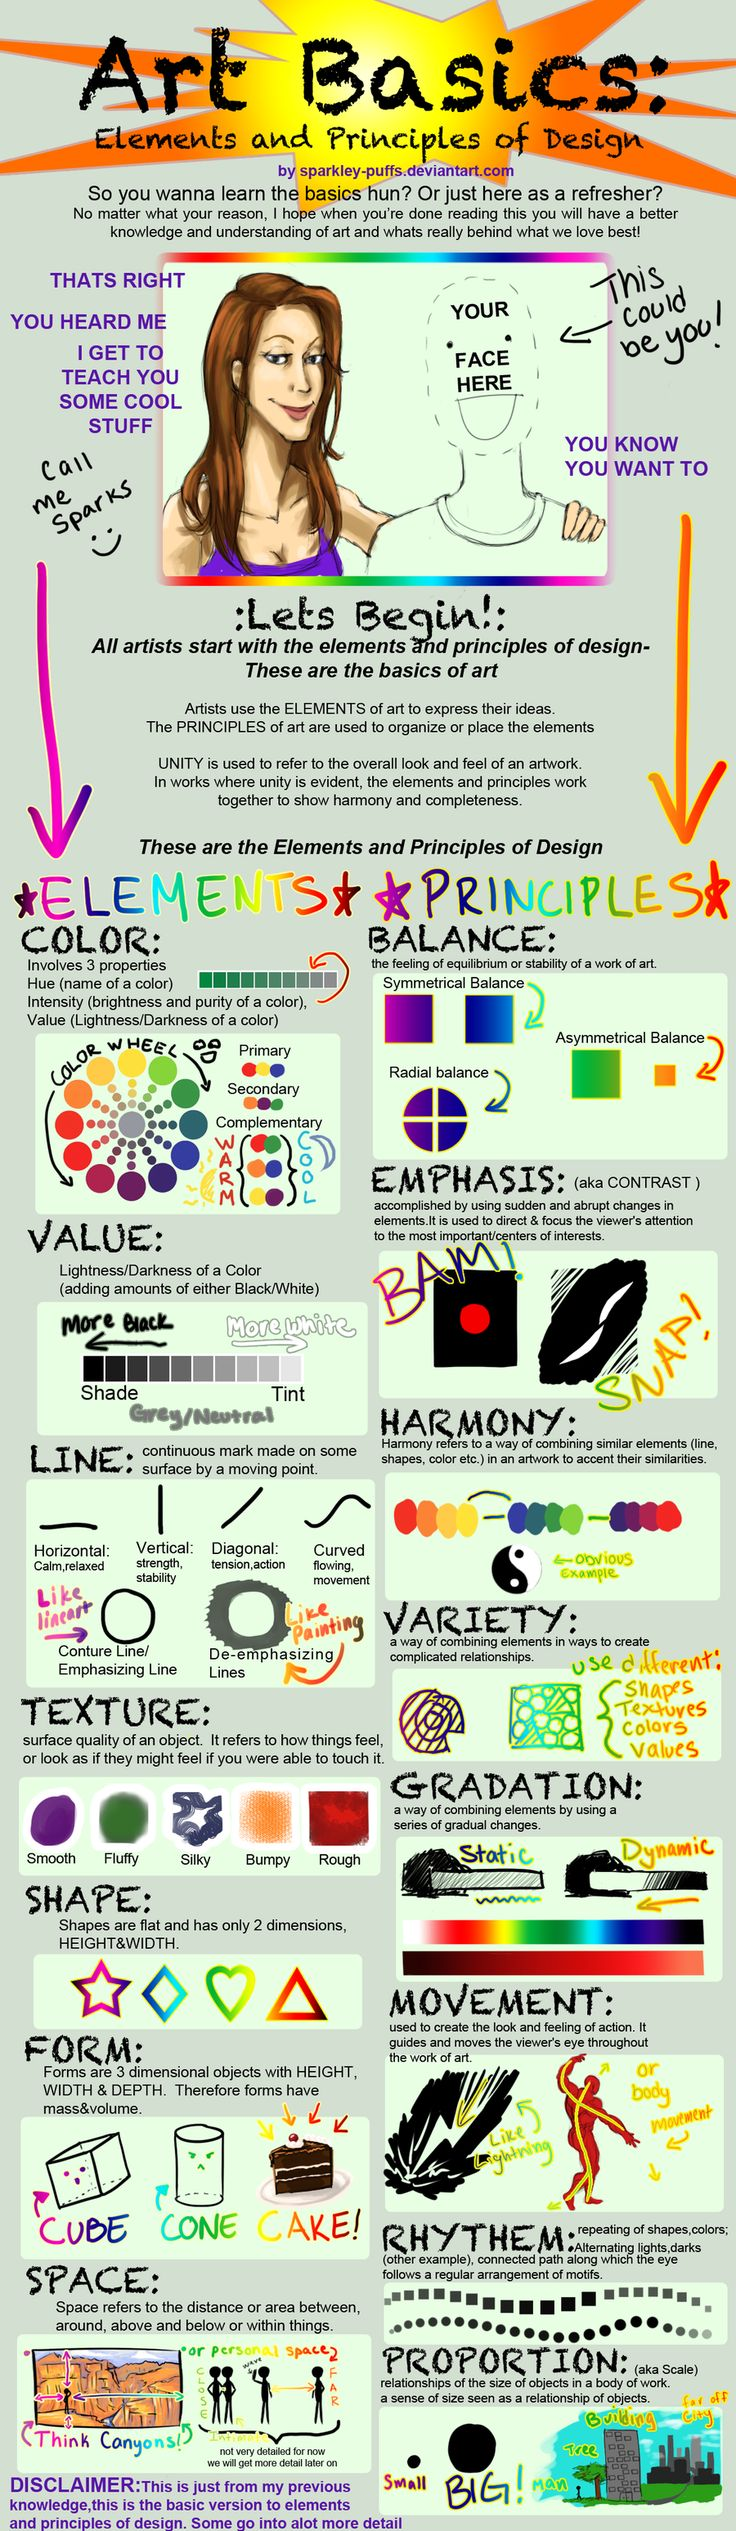 7 Elements And Principles Of Design : Elements principles of design by thecuddlykoalawhale